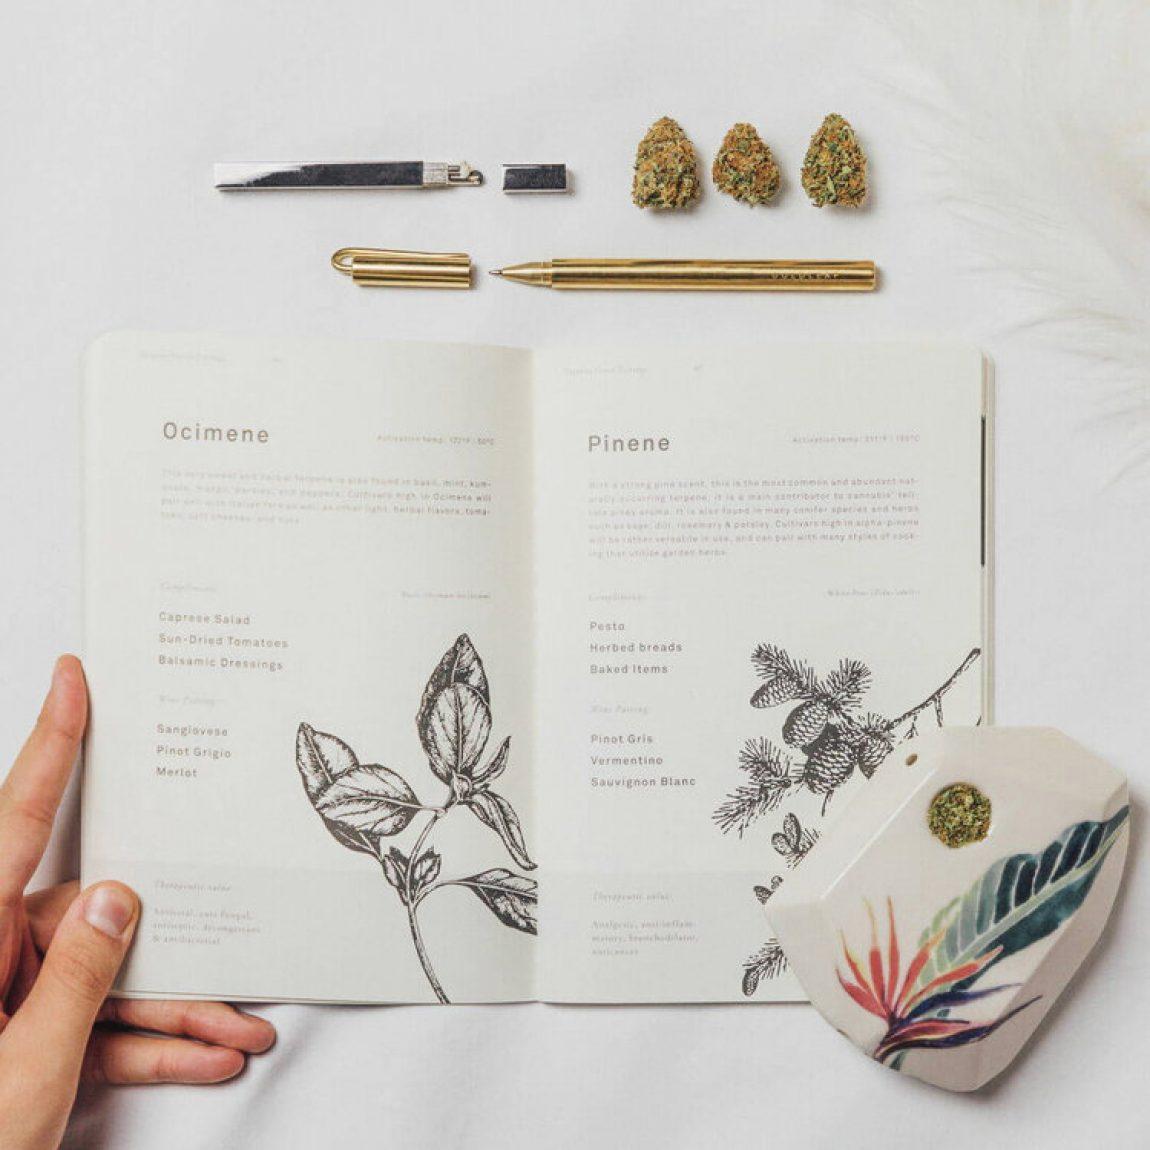 An Expert's Guide to Keeping a Cannabis Journal